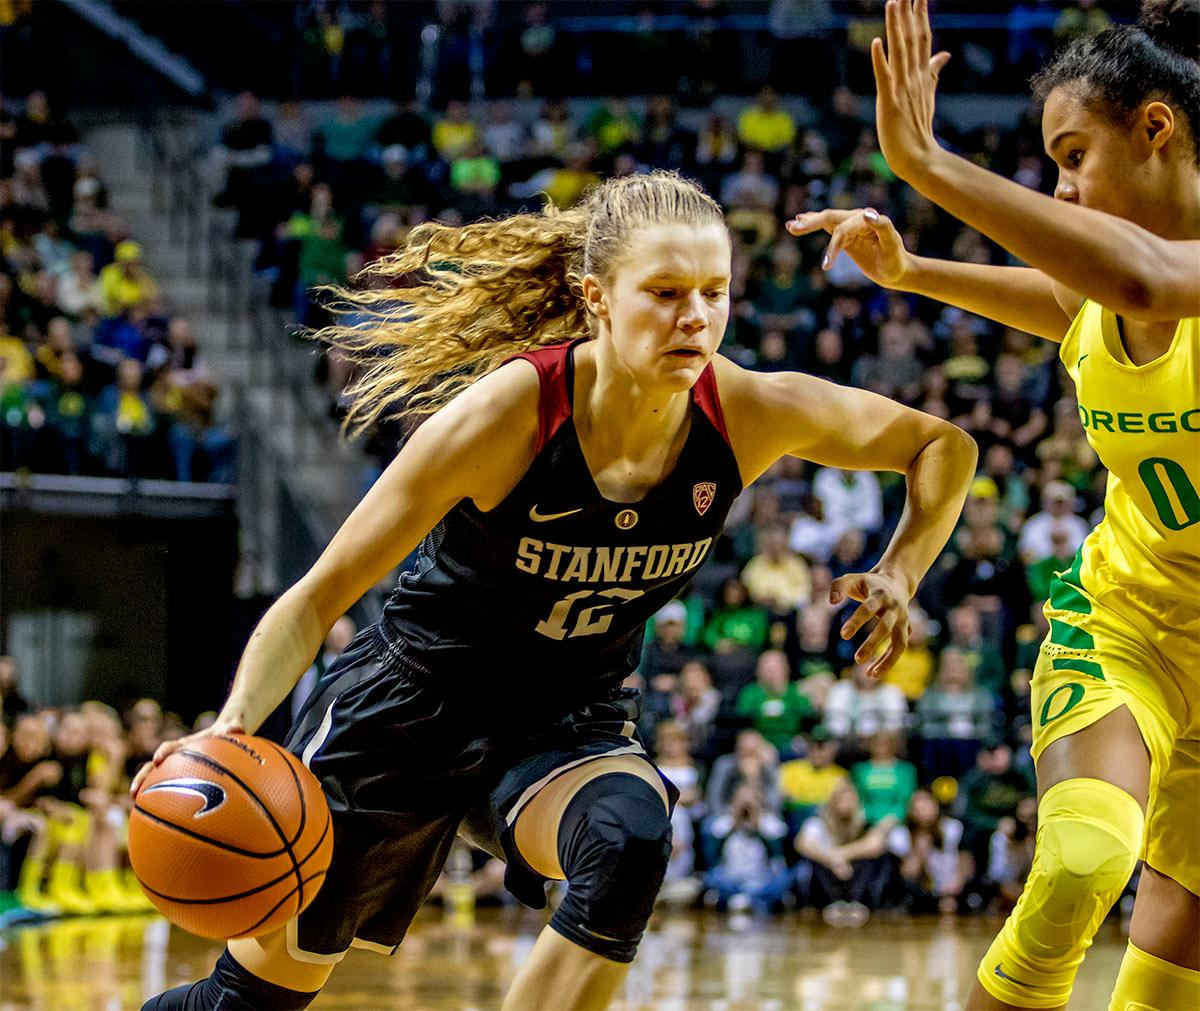 The Cardinal's Brittany Smith (#12) makes a run for the basket. The Stanford Cardinal defeated the Oregon Ducks 78-65 on Sunday afternoon at Matthew Knight Arena. Stanford is now 10-2 in conference play and with this loss the Ducks drop to 10-2. Leading the Stanford Cardinal was Brittany McPhee with 33 points, Alanna Smith with 14 points, and Kiana Williams with 14 points. For the Ducks Sabrina Ionescu led with 22 points, Ruthy Hebard added 16 points, and Satou Sabally put in 14 points. Photo by August Frank, Oregon News Lab